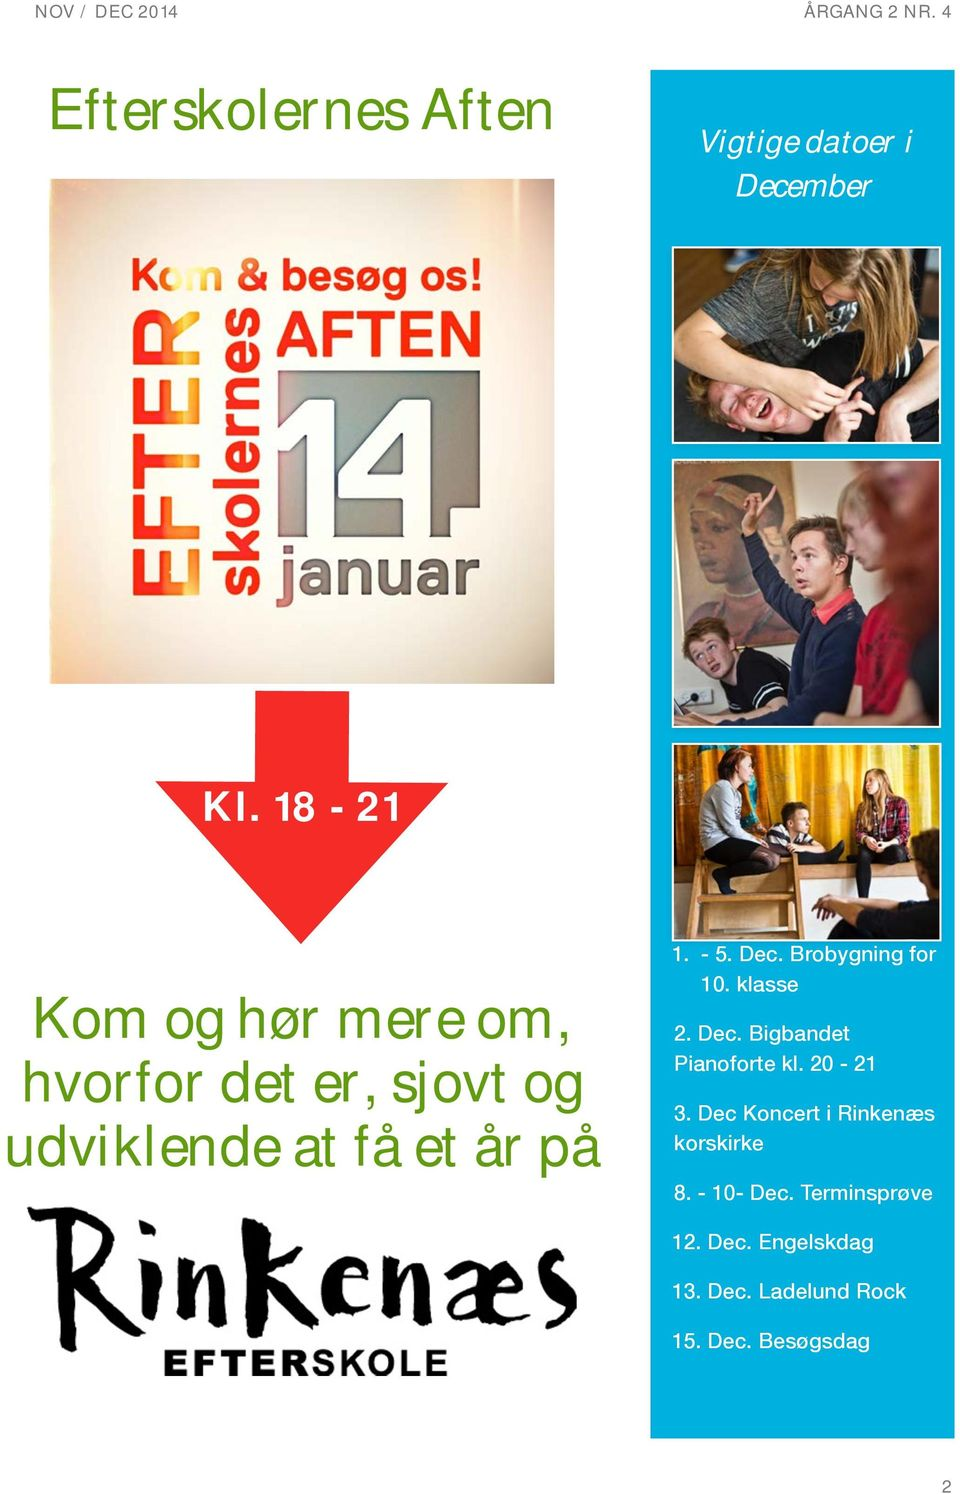 - 5. Dec. Brobygning for 10. klasse 2. Dec. Bigbandet Pianoforte kl. 20-21 3.